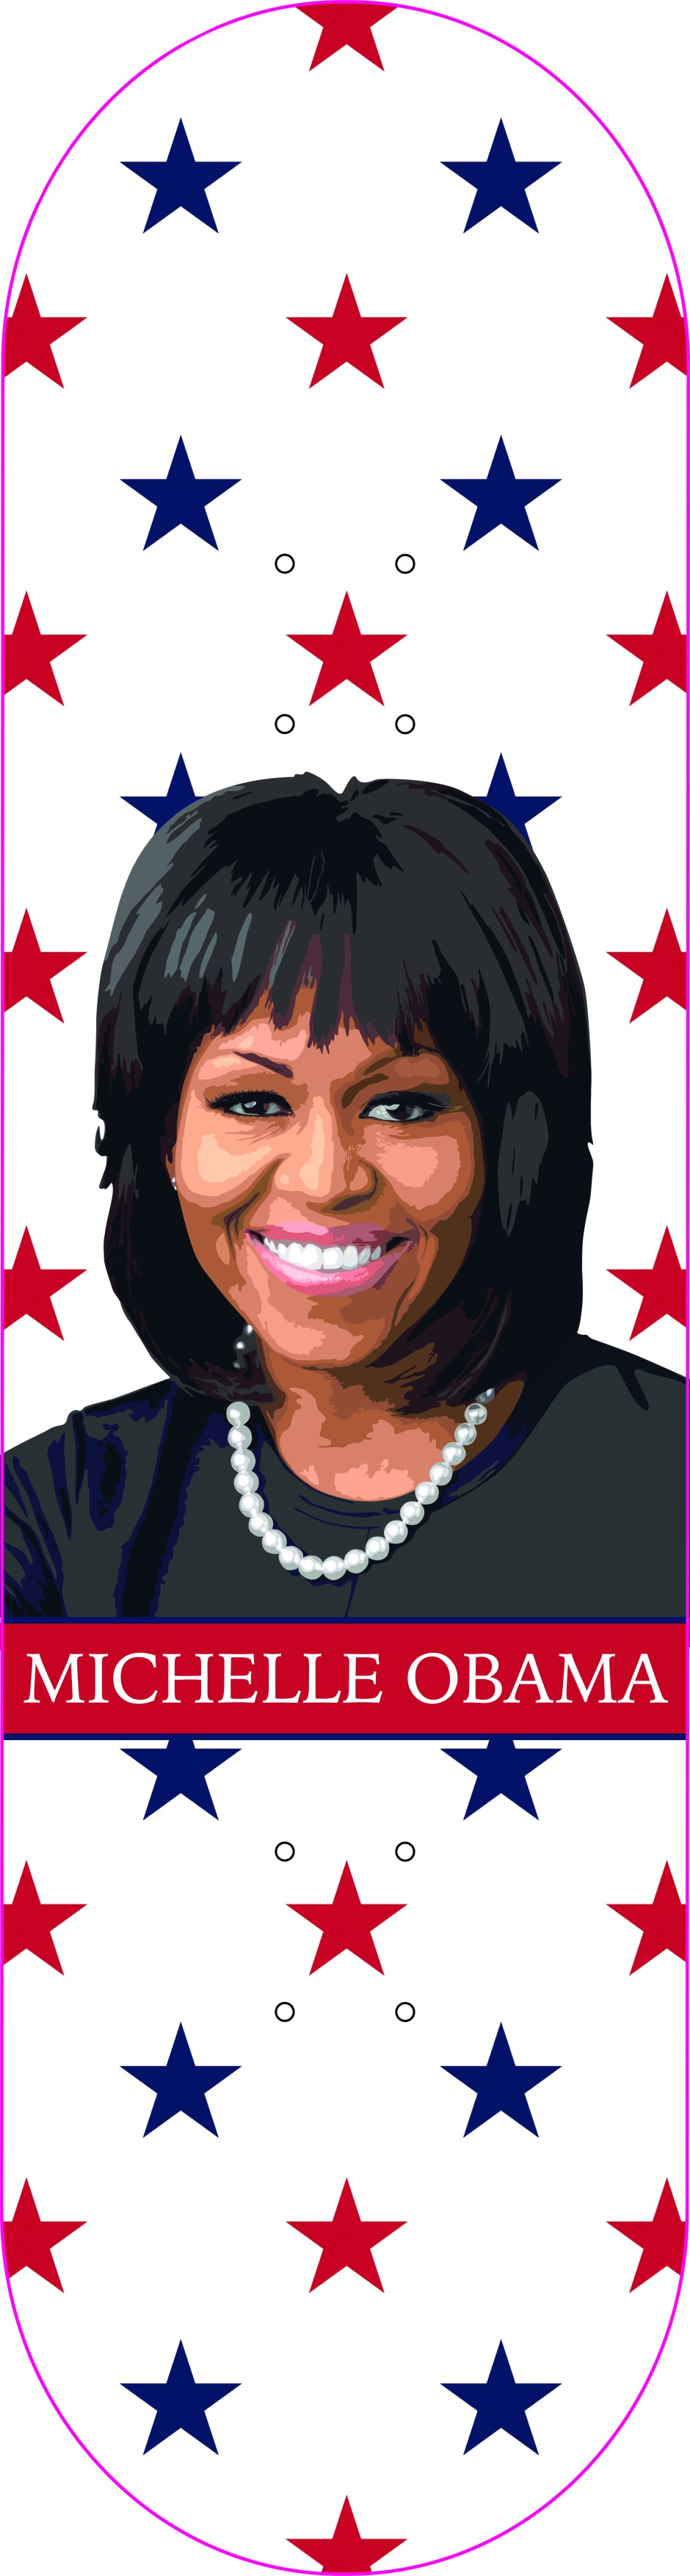 michelle obama try out 2